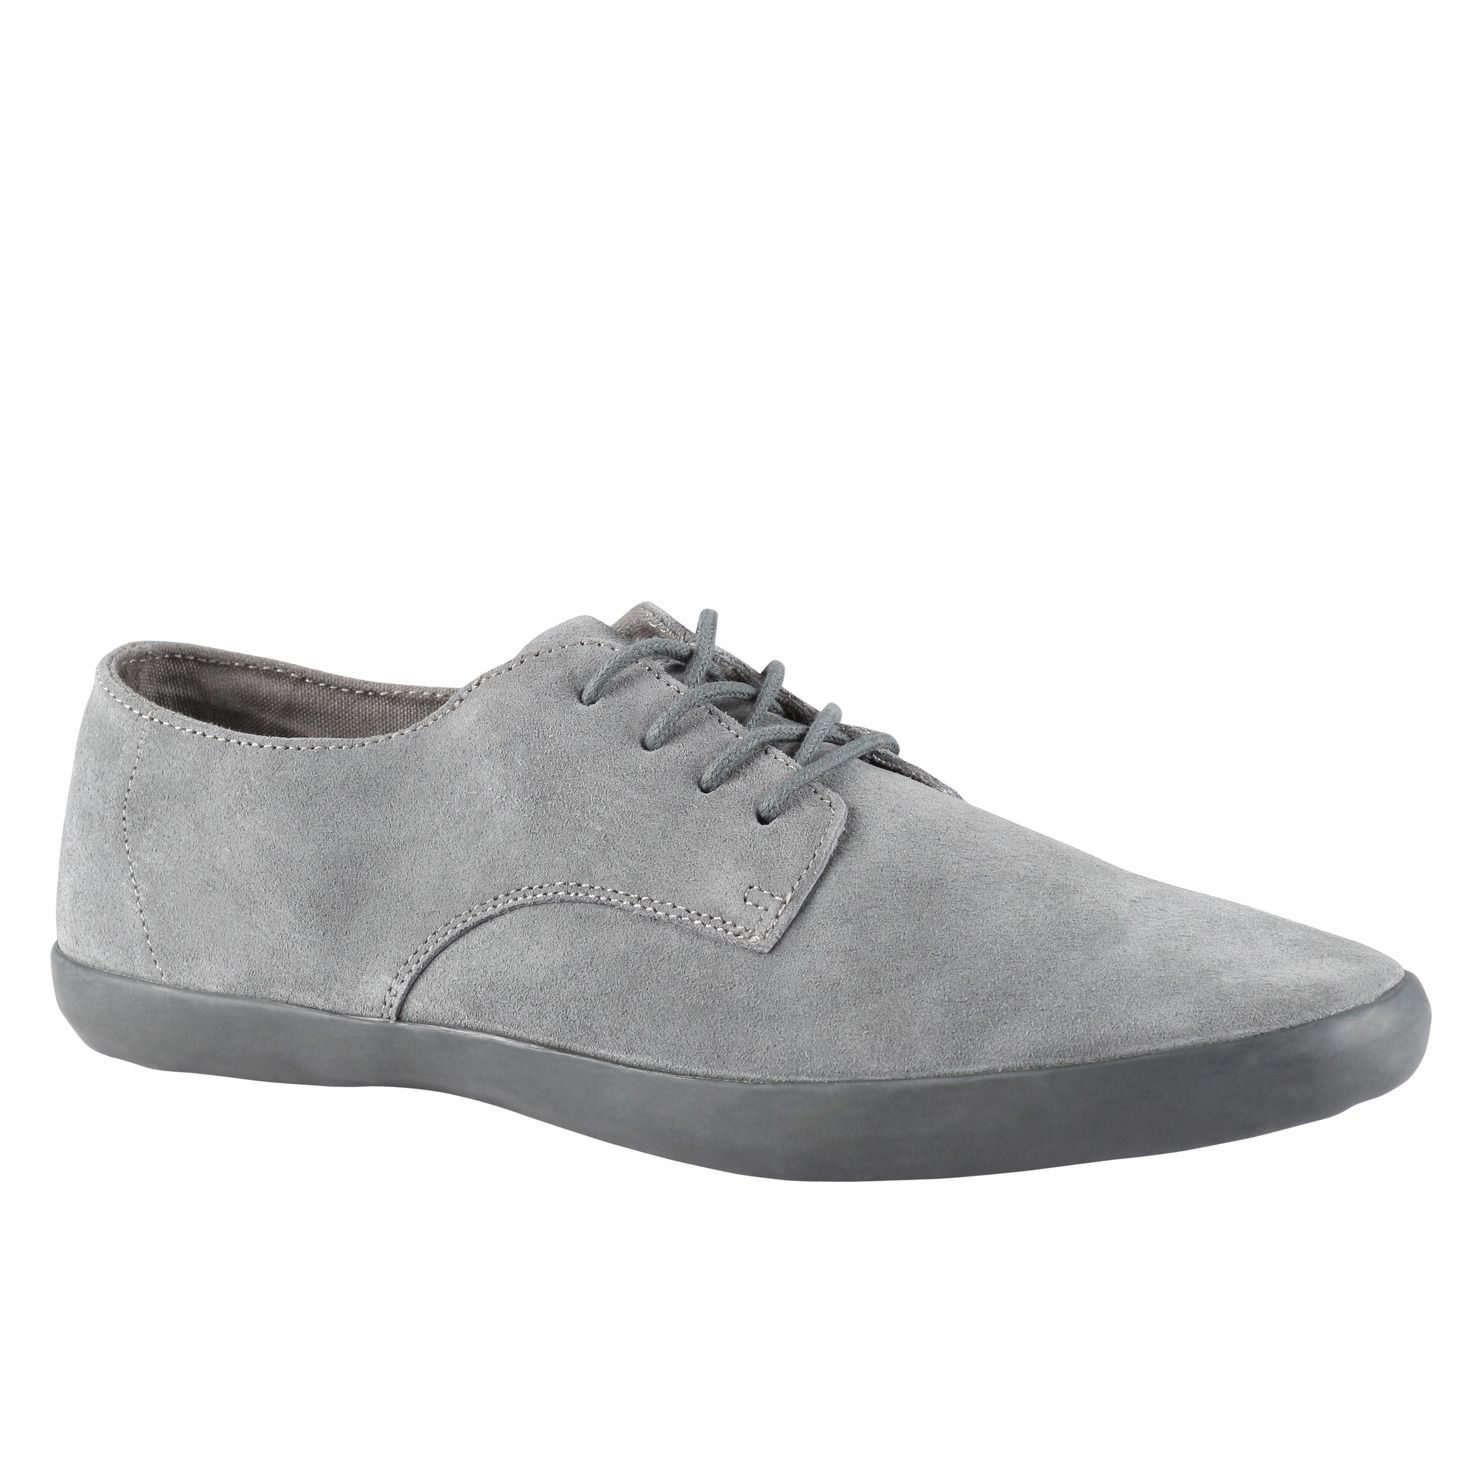 BRACKENBURY men's sneakers shoes for sale at ALDO Shoes